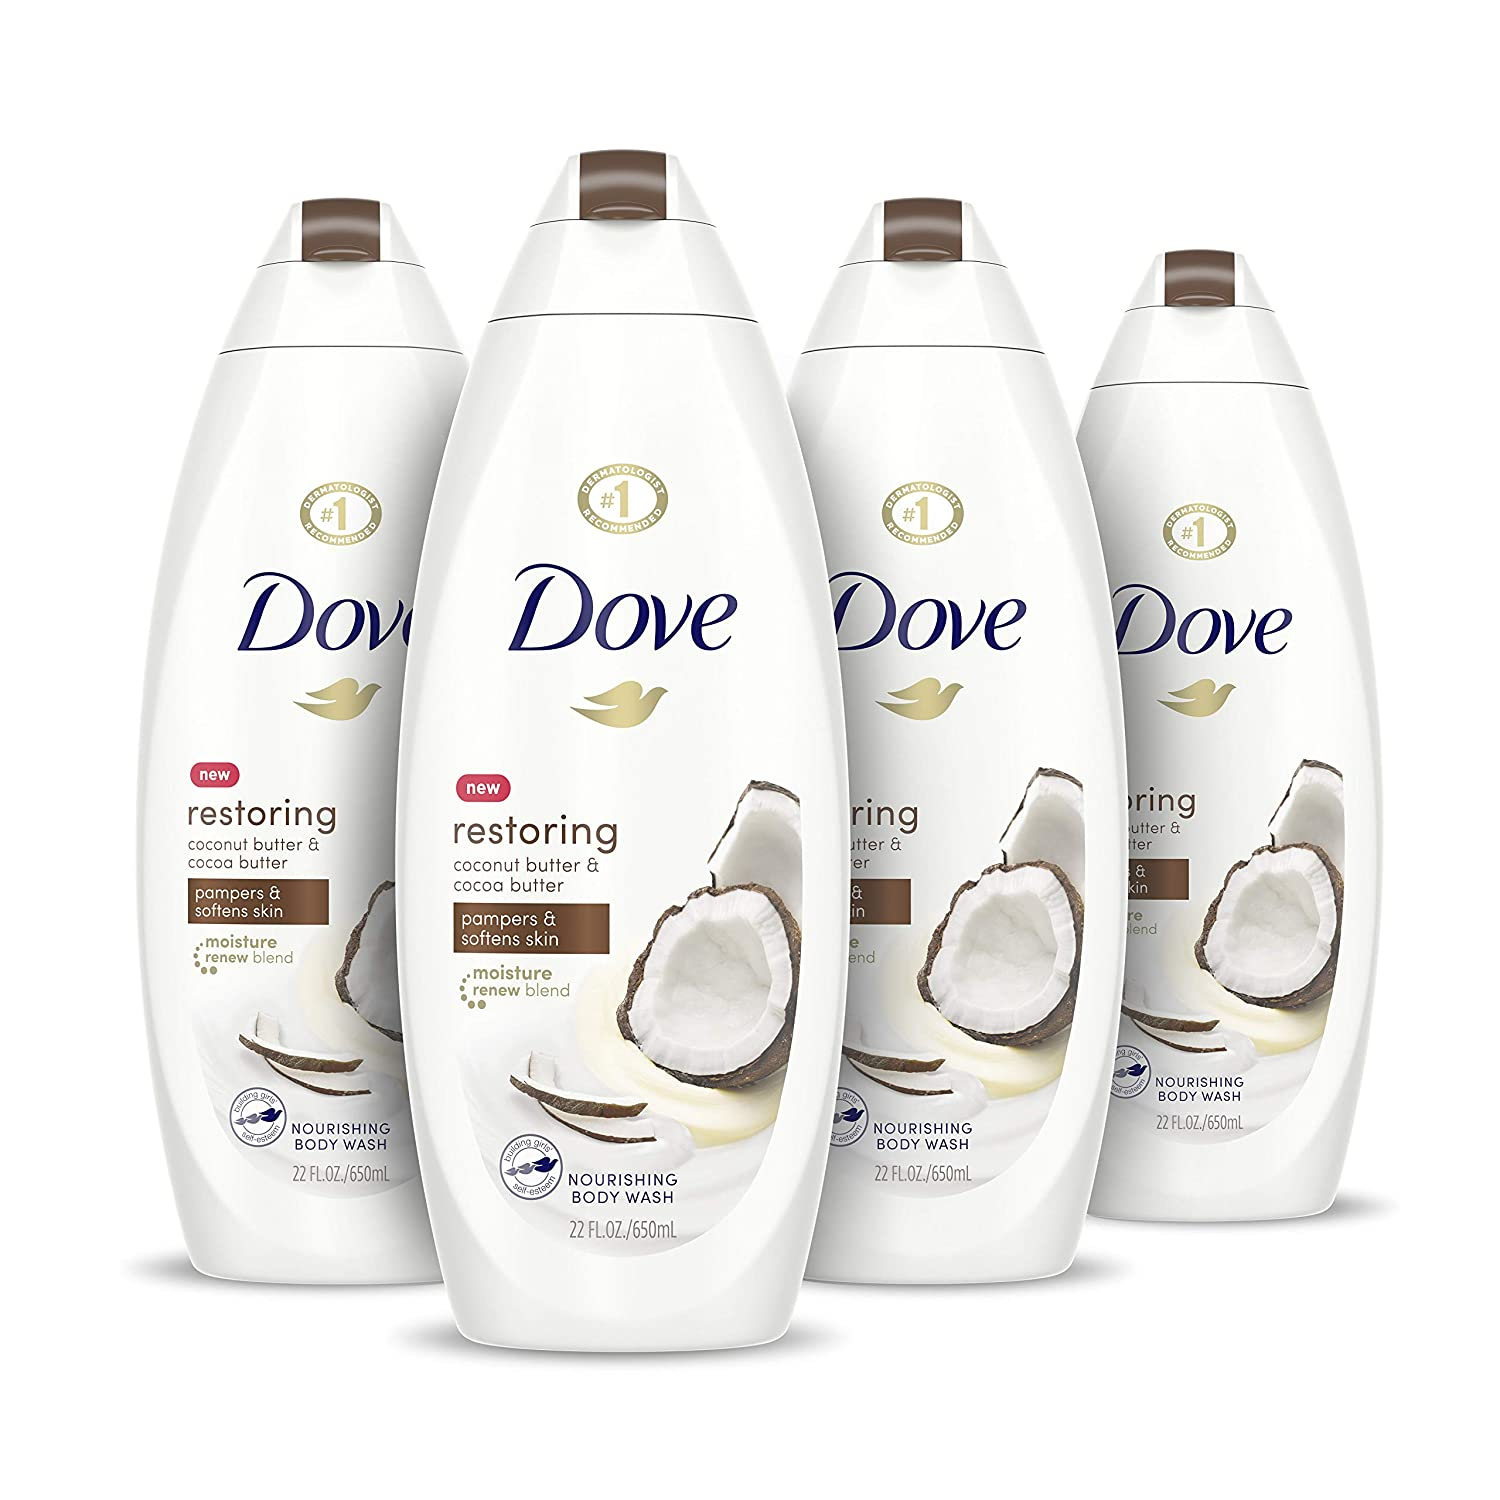 Dove Purely Pampering Body Wash for Dry Skin Coconut Butter and Cocoa Butter